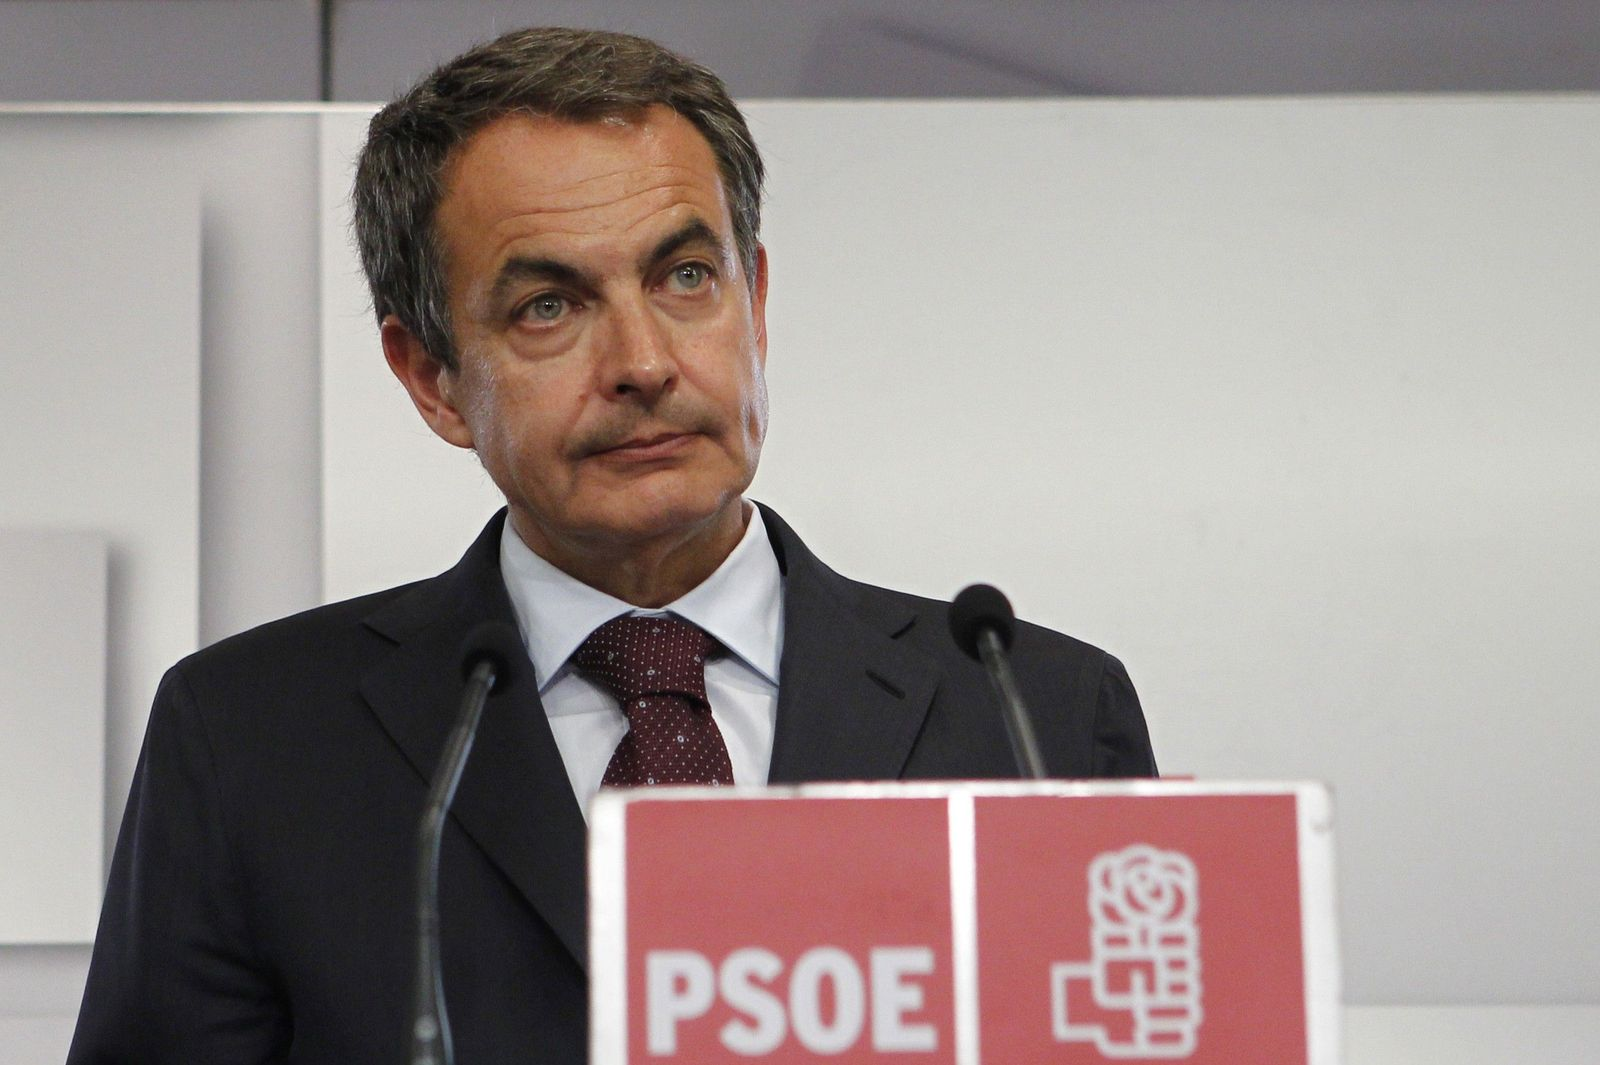 SPAIN-ELECTIONS/